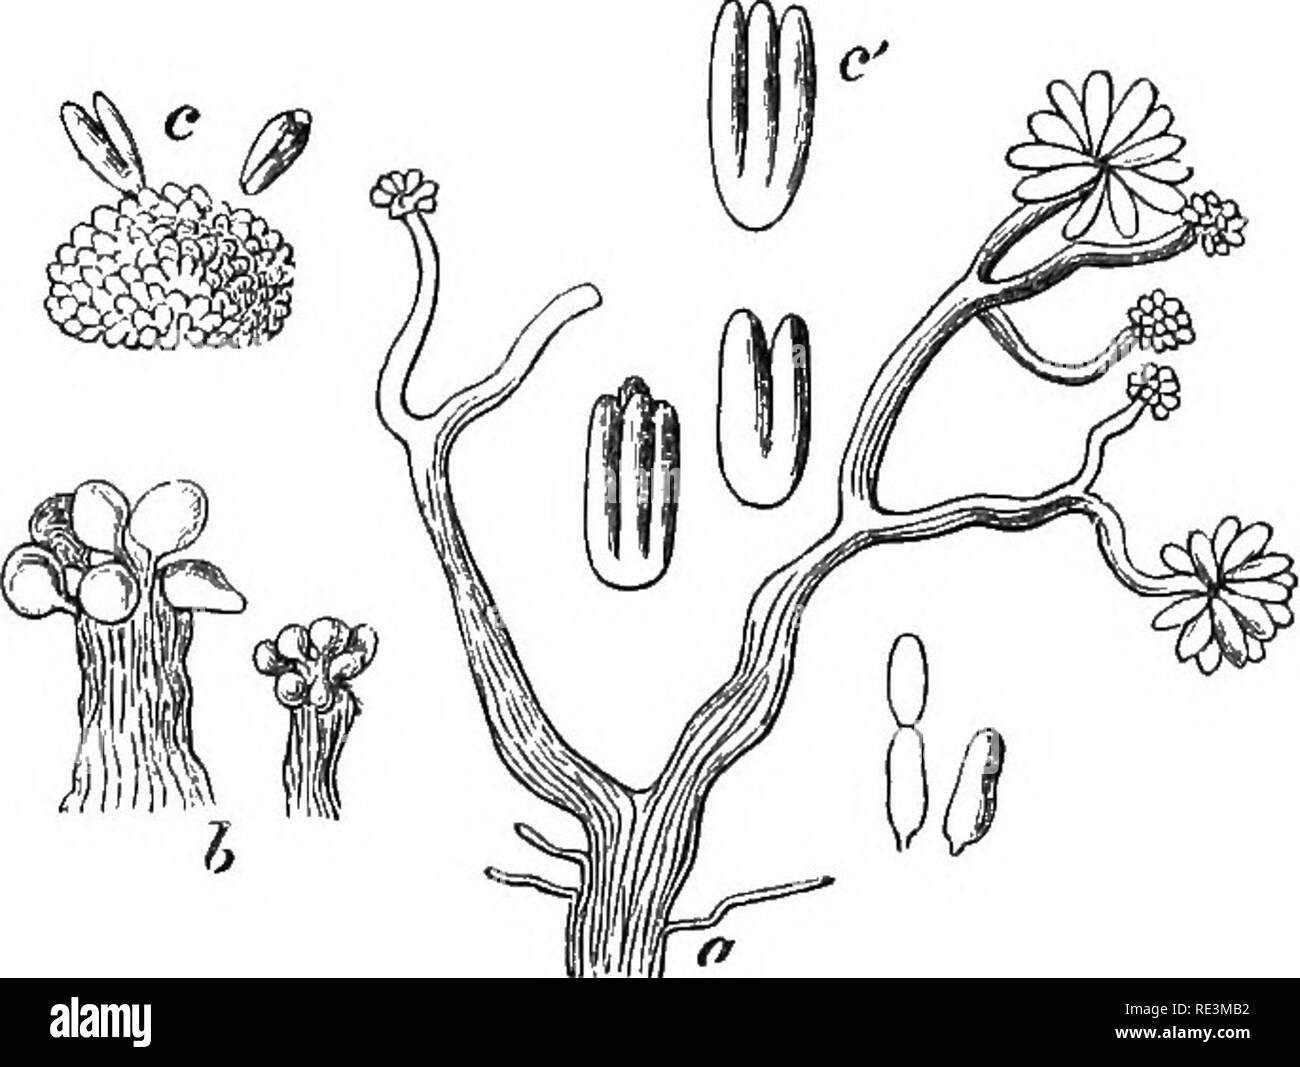 . Introduction to cryptogamic botany. Cryptogams. INTRODUCTION TO CRYPTOGAMIC BOTANY. gl3 belong to temperate climes. Few, however, are known except those which belong to Europe, North Africa, and the United States. A curious Epicoccum occurs in New Zealand.. Fig. 70. a. Chondromyces crocatus, Berk, and Curt., with its spores. Both magnified. From specimens on a decayed gourd from South Caro- lina. b. Stigmatella aurantiaca. Berk, and Curt. From specimens on SphcBria Hihisci, South Carolina. Magnified. c. Cheiromyces stellatus, Berk, and Curt. d. Spores of ditto. Both magnified. From specimens - Stock Image